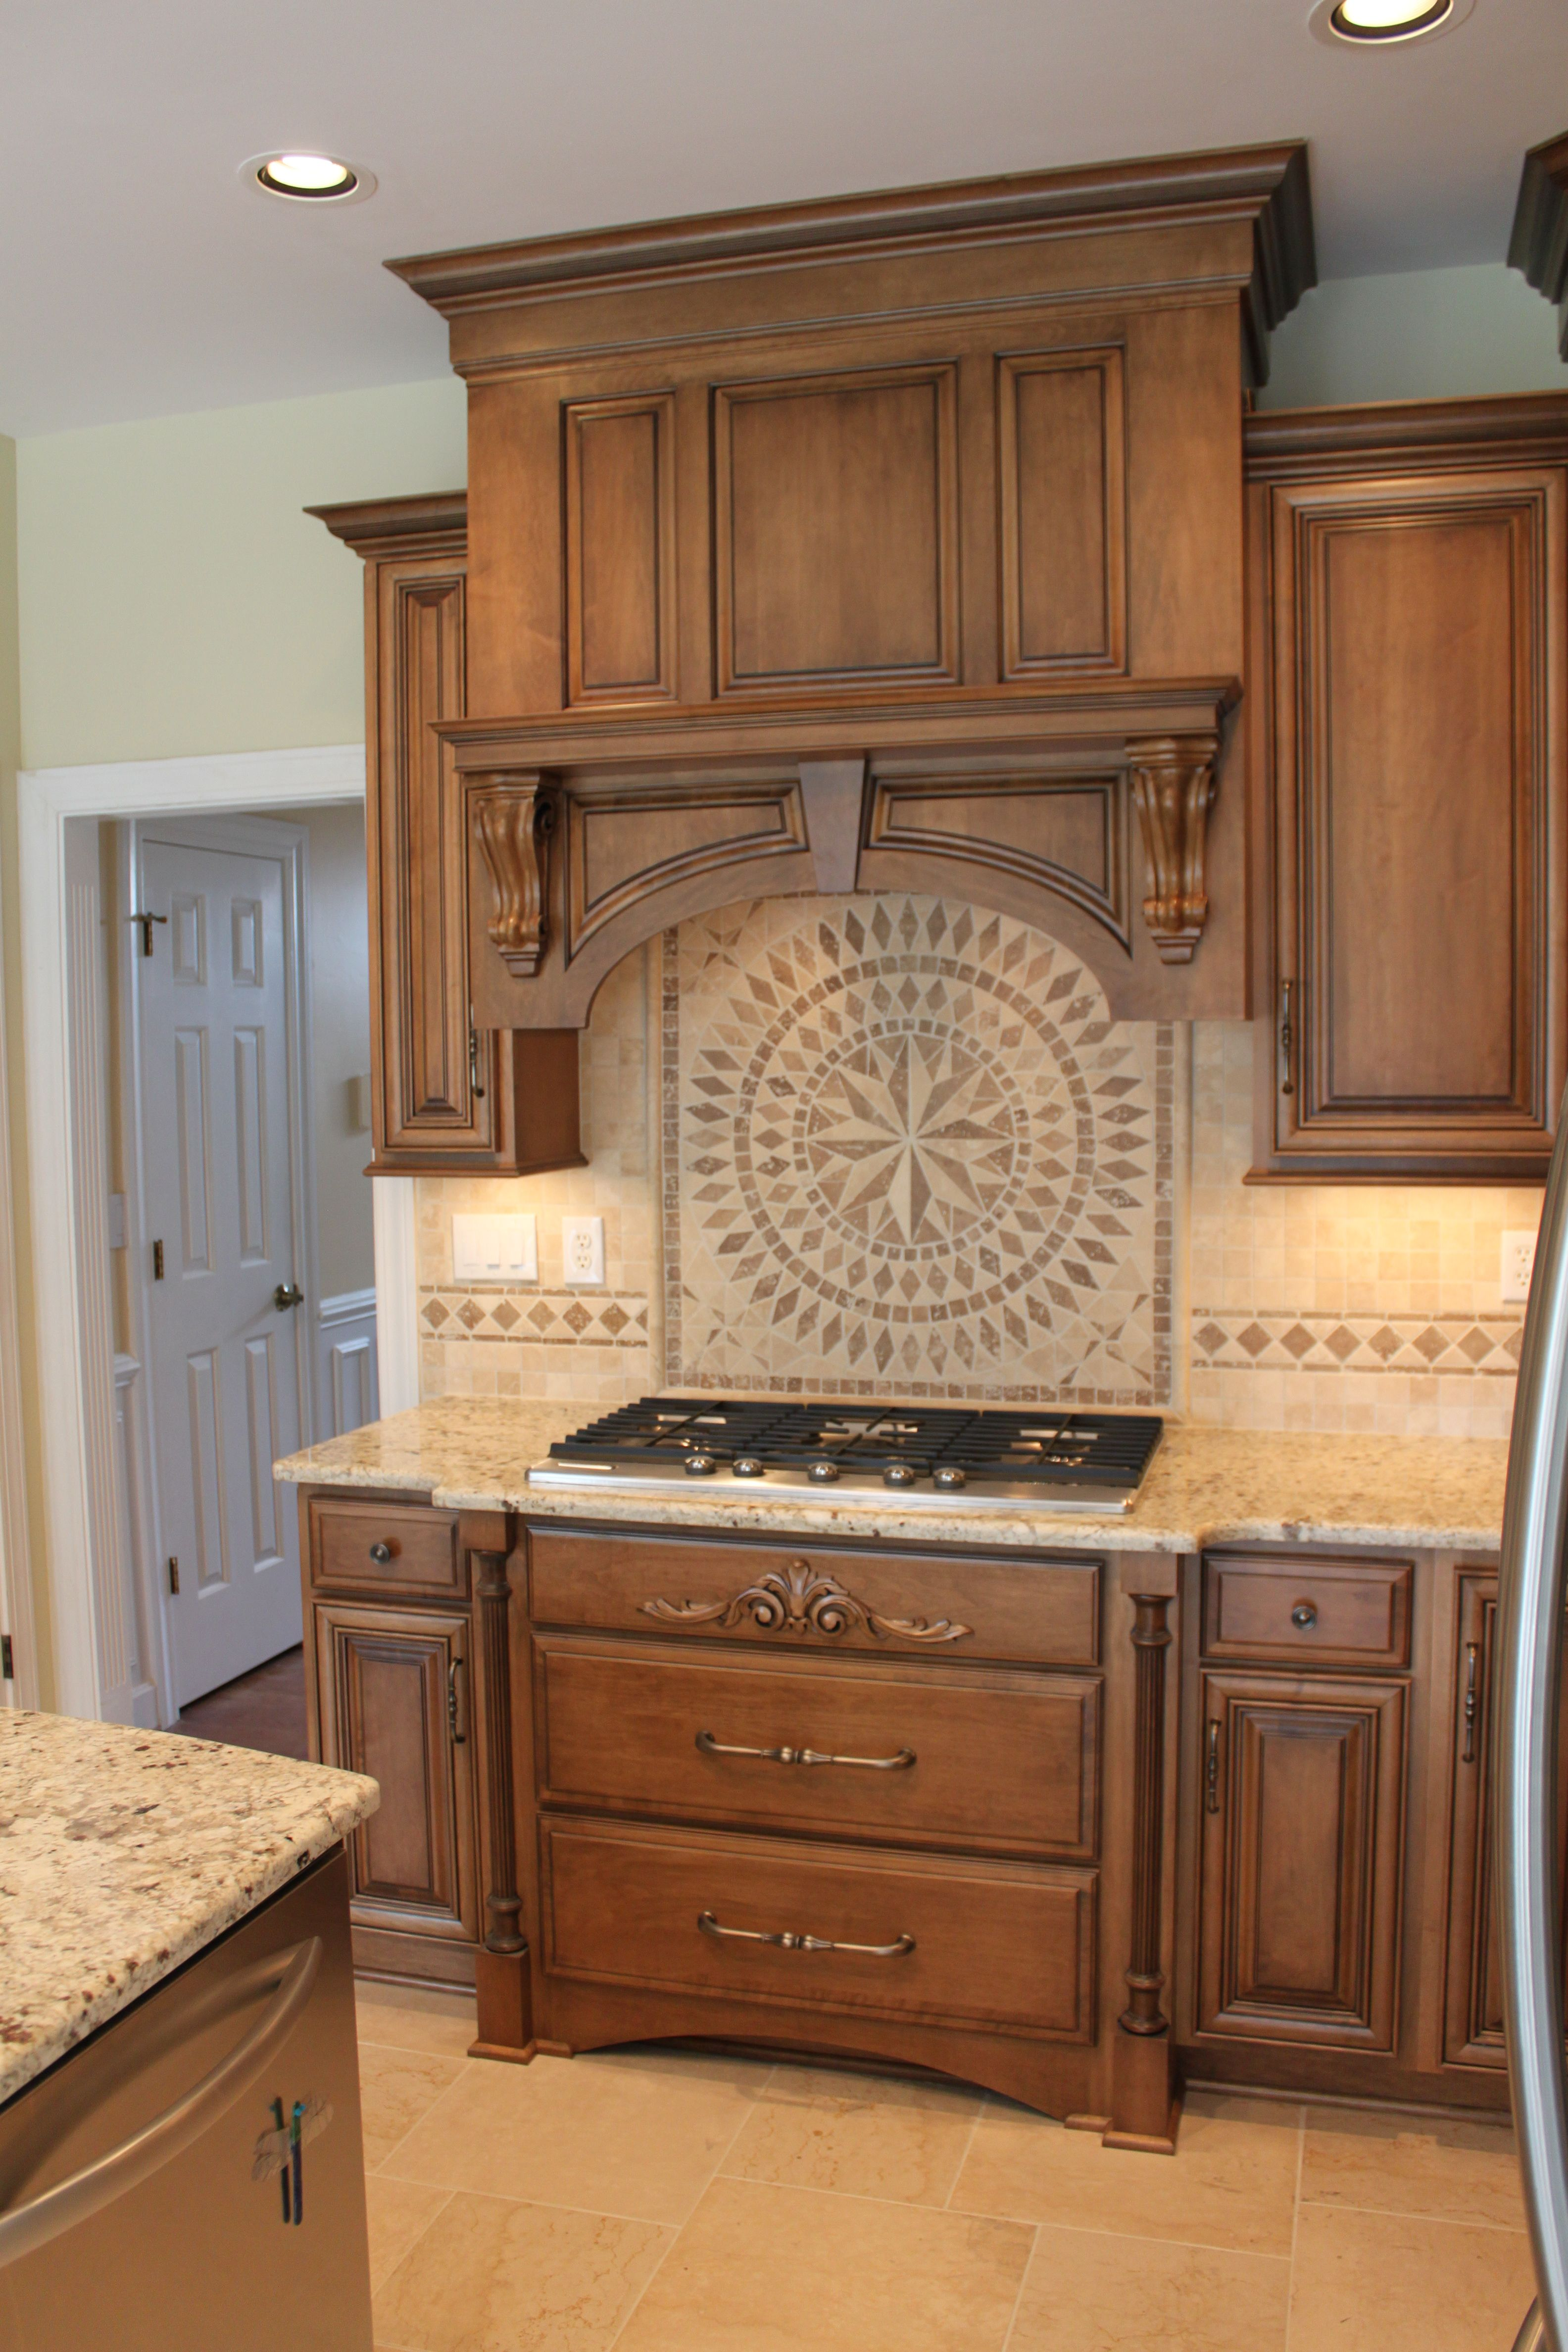 shiloh cabinetry maple acorn with vandyke glaze on perimeter maple sable with black glaze - Acorn Kitchen Cabinets